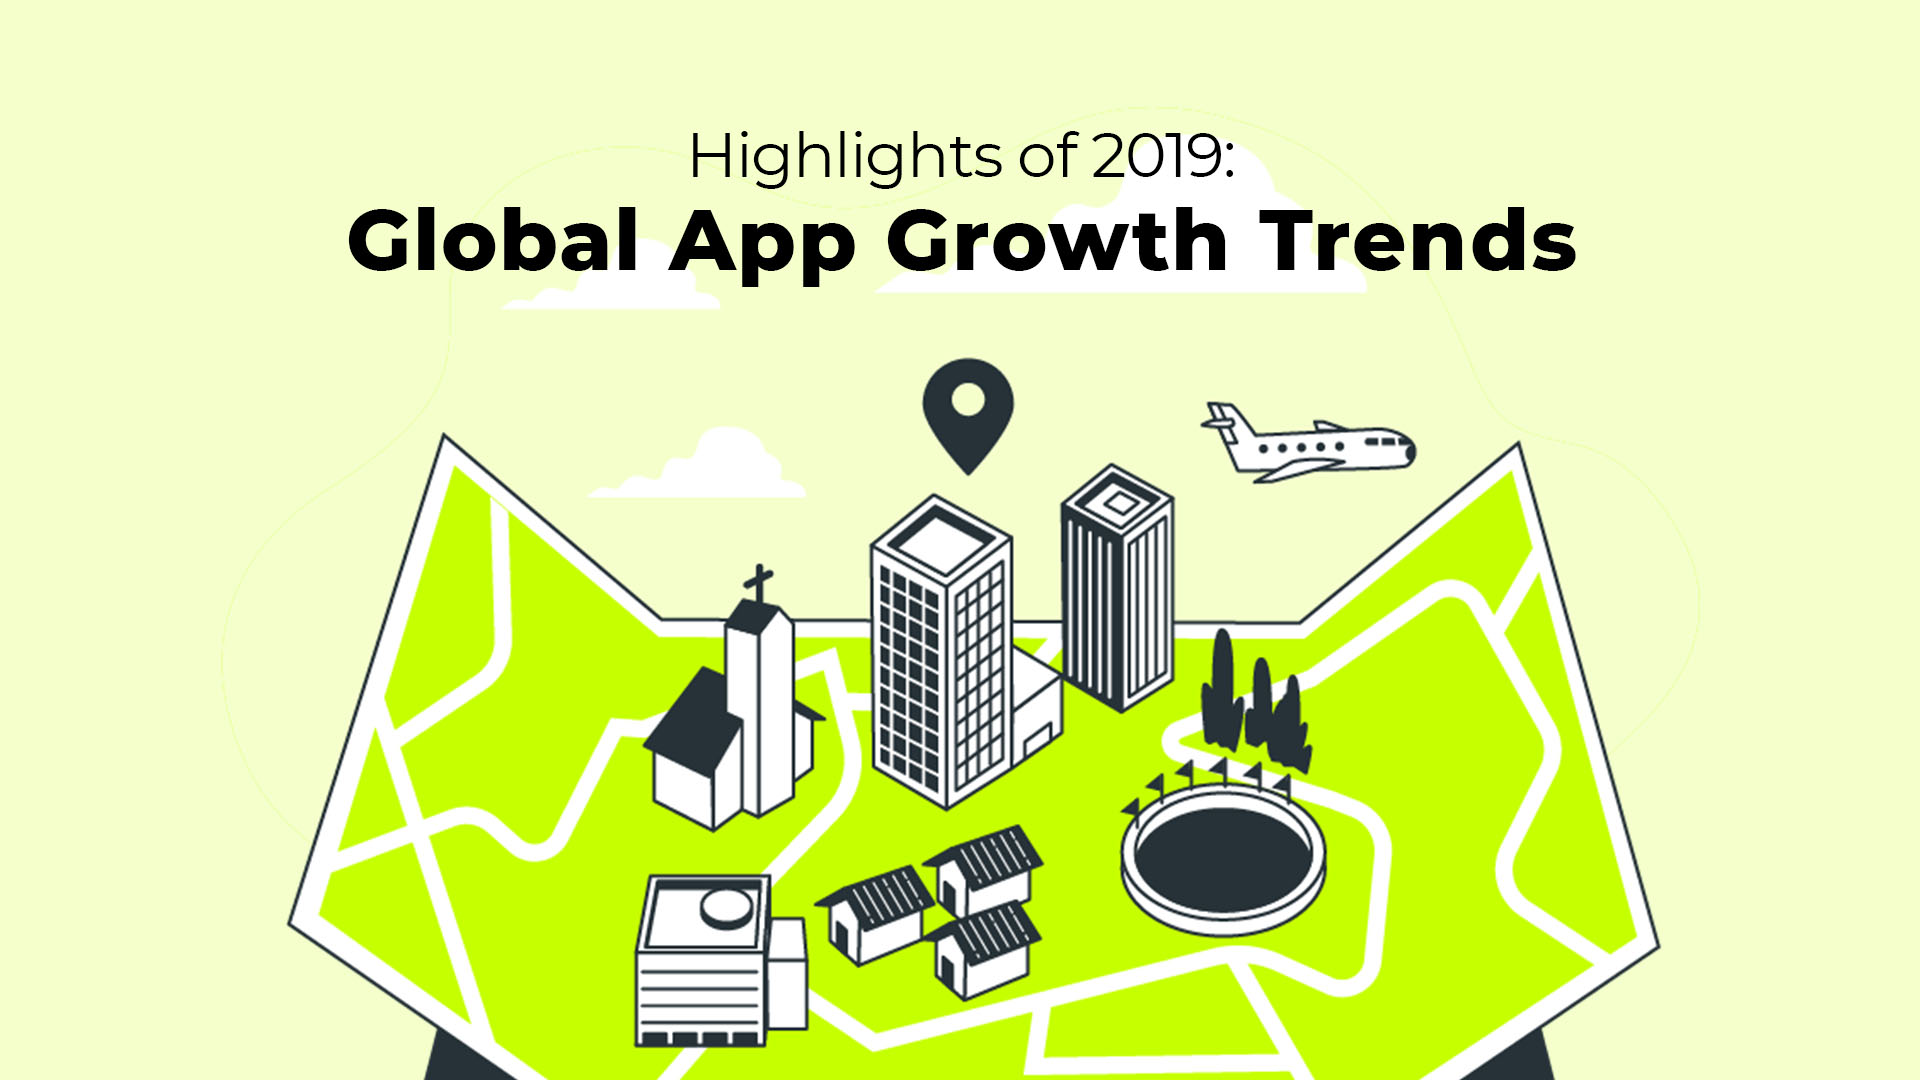 Global App Growth Trends